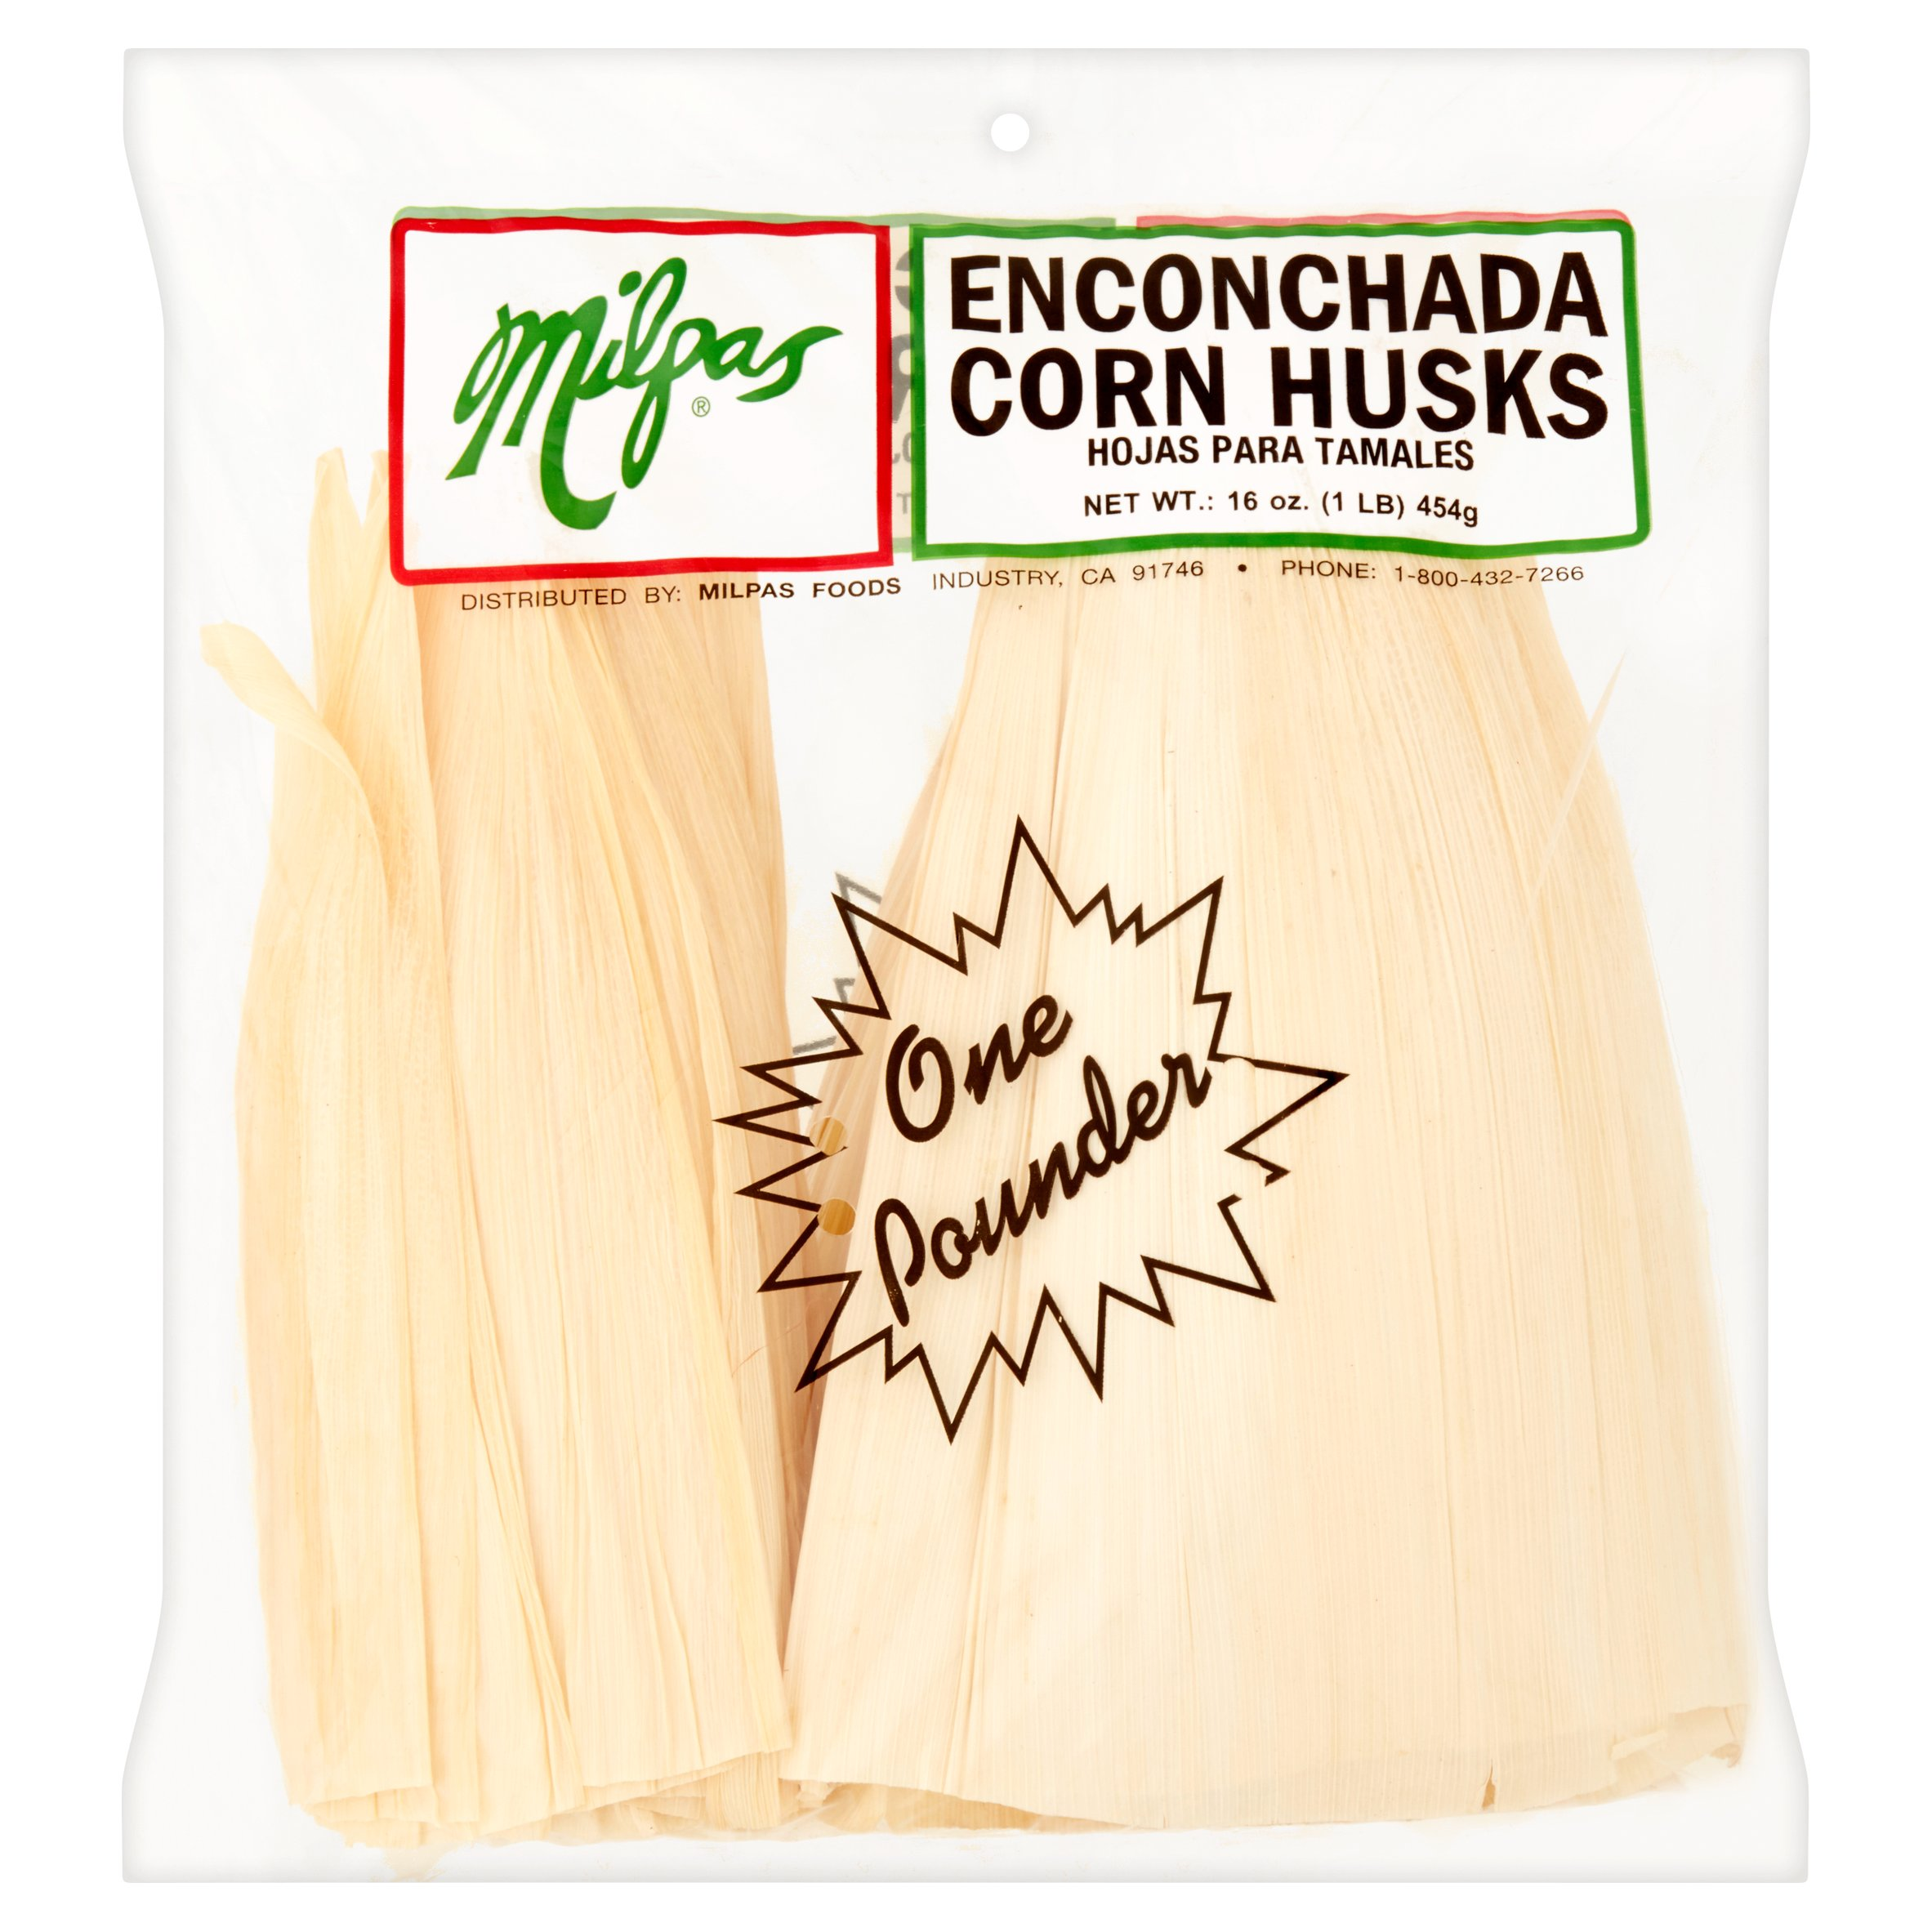 Milpas Enconchada Corn Husks, 16 oz